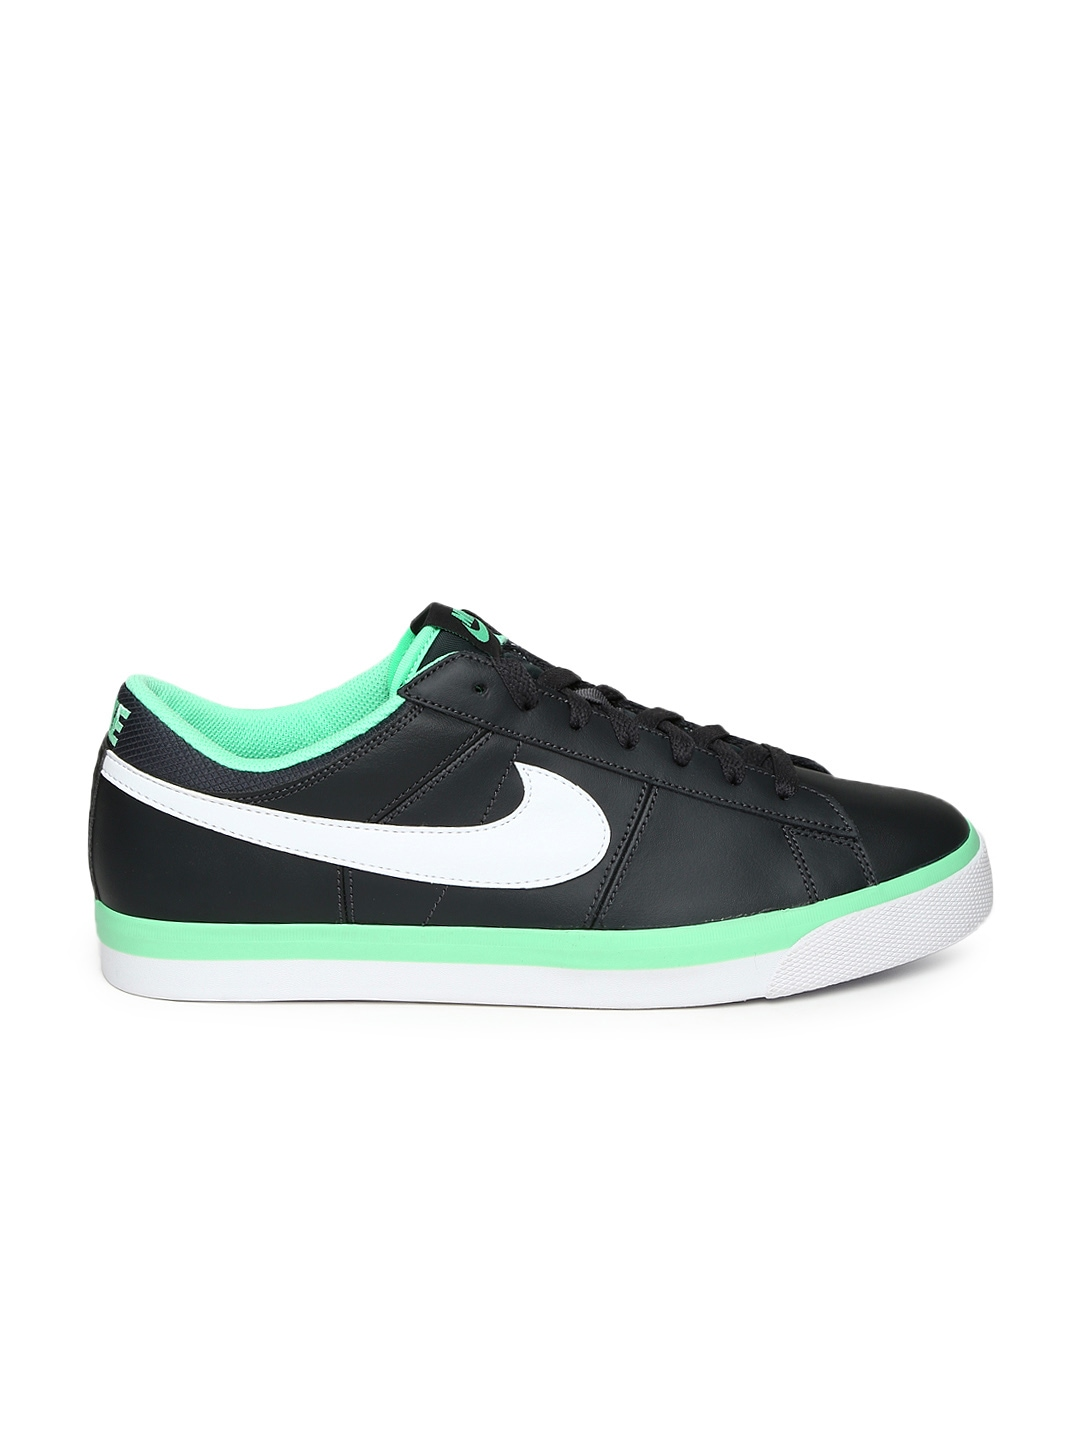 myntra nike black match supreme leather casual shoes